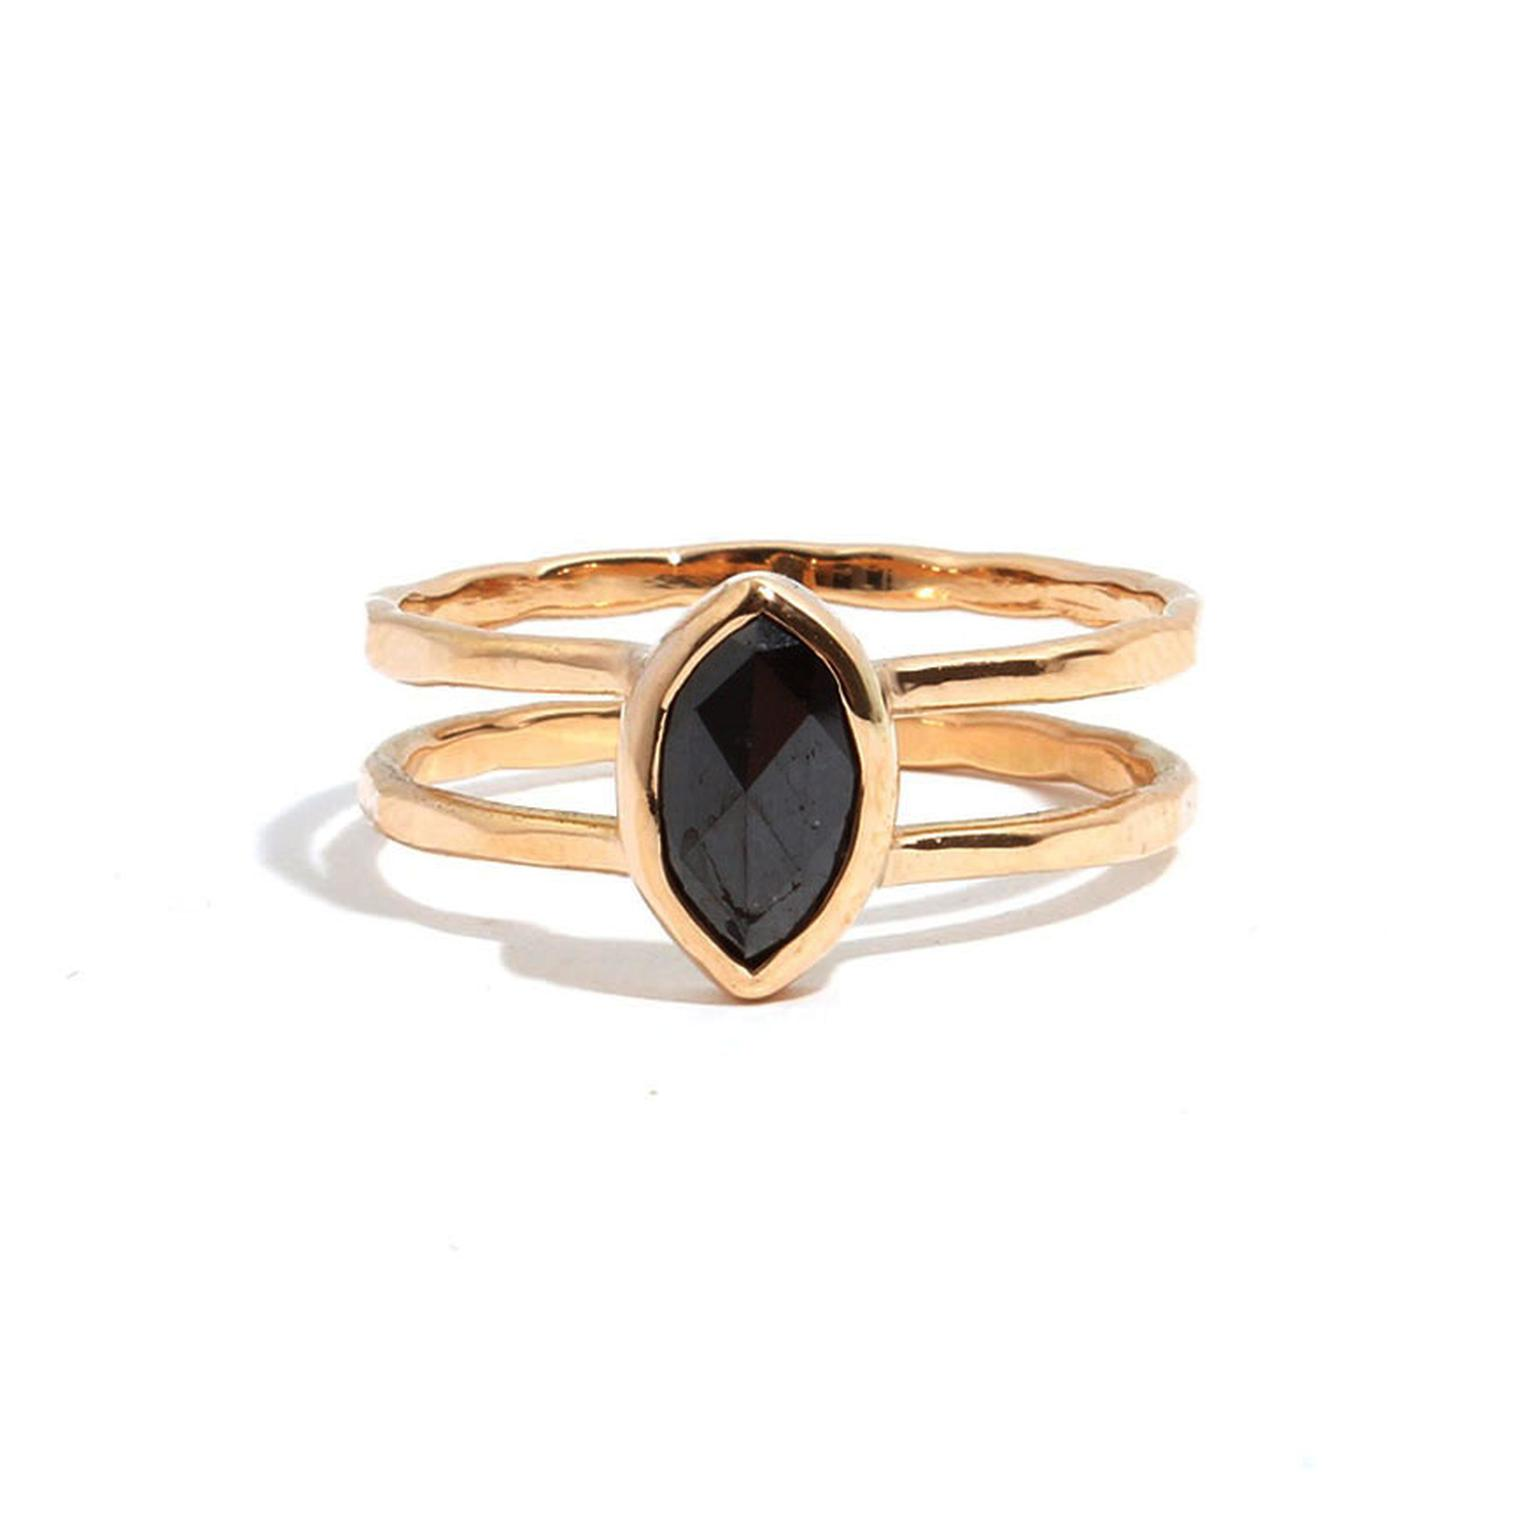 Melissa Joy Manning black diamond engagement ring